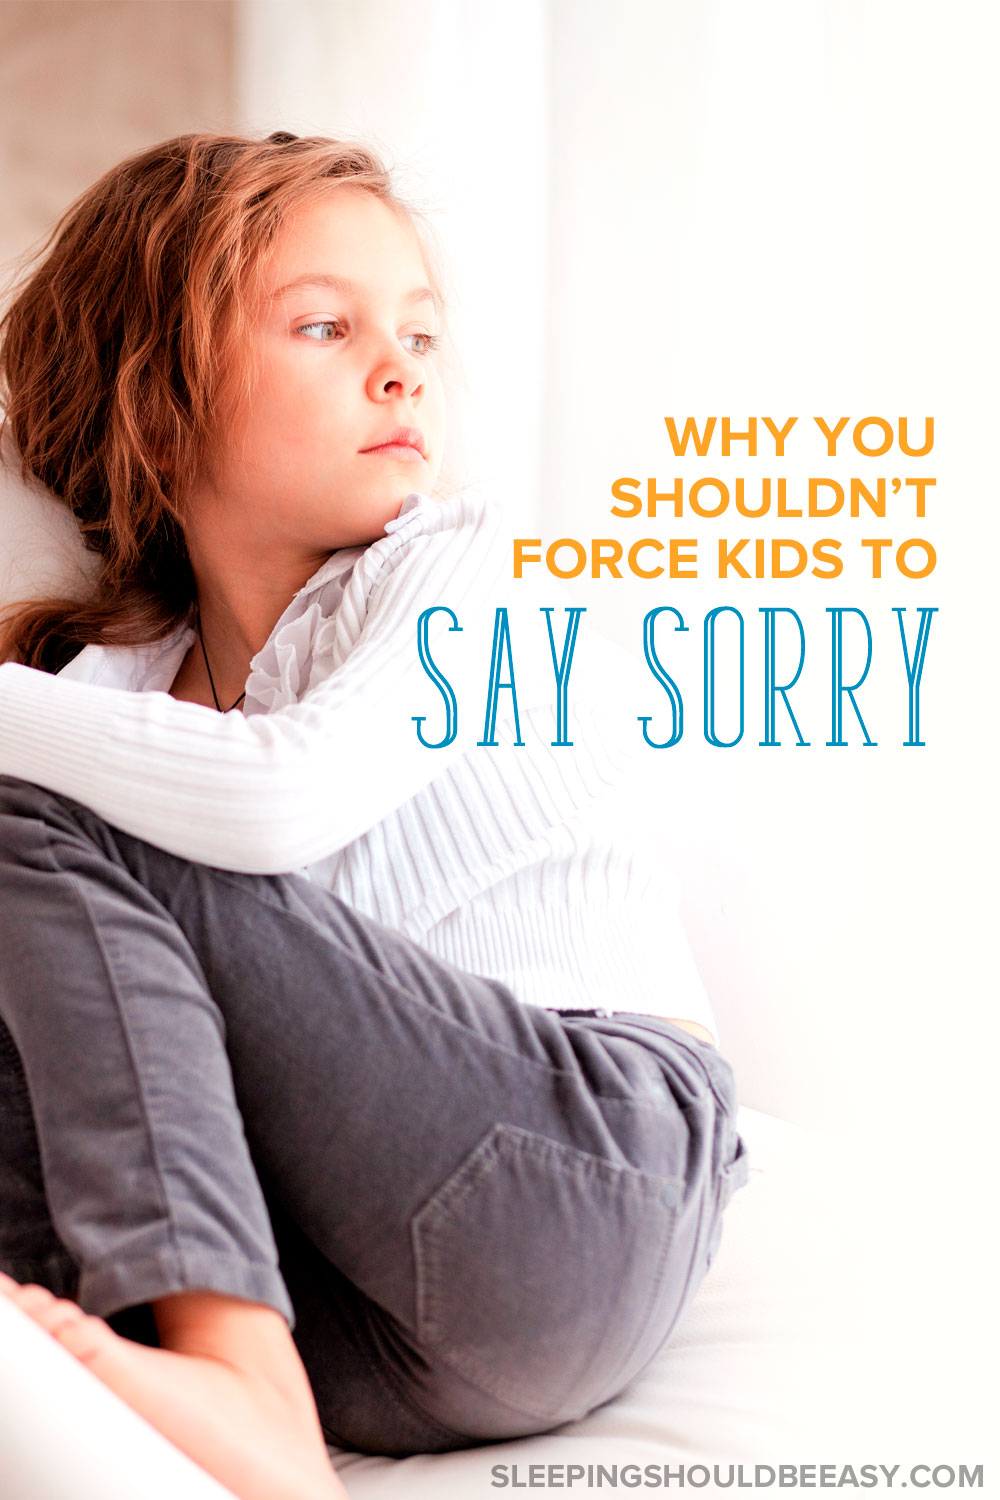 Child refuses to apologize and say sorry